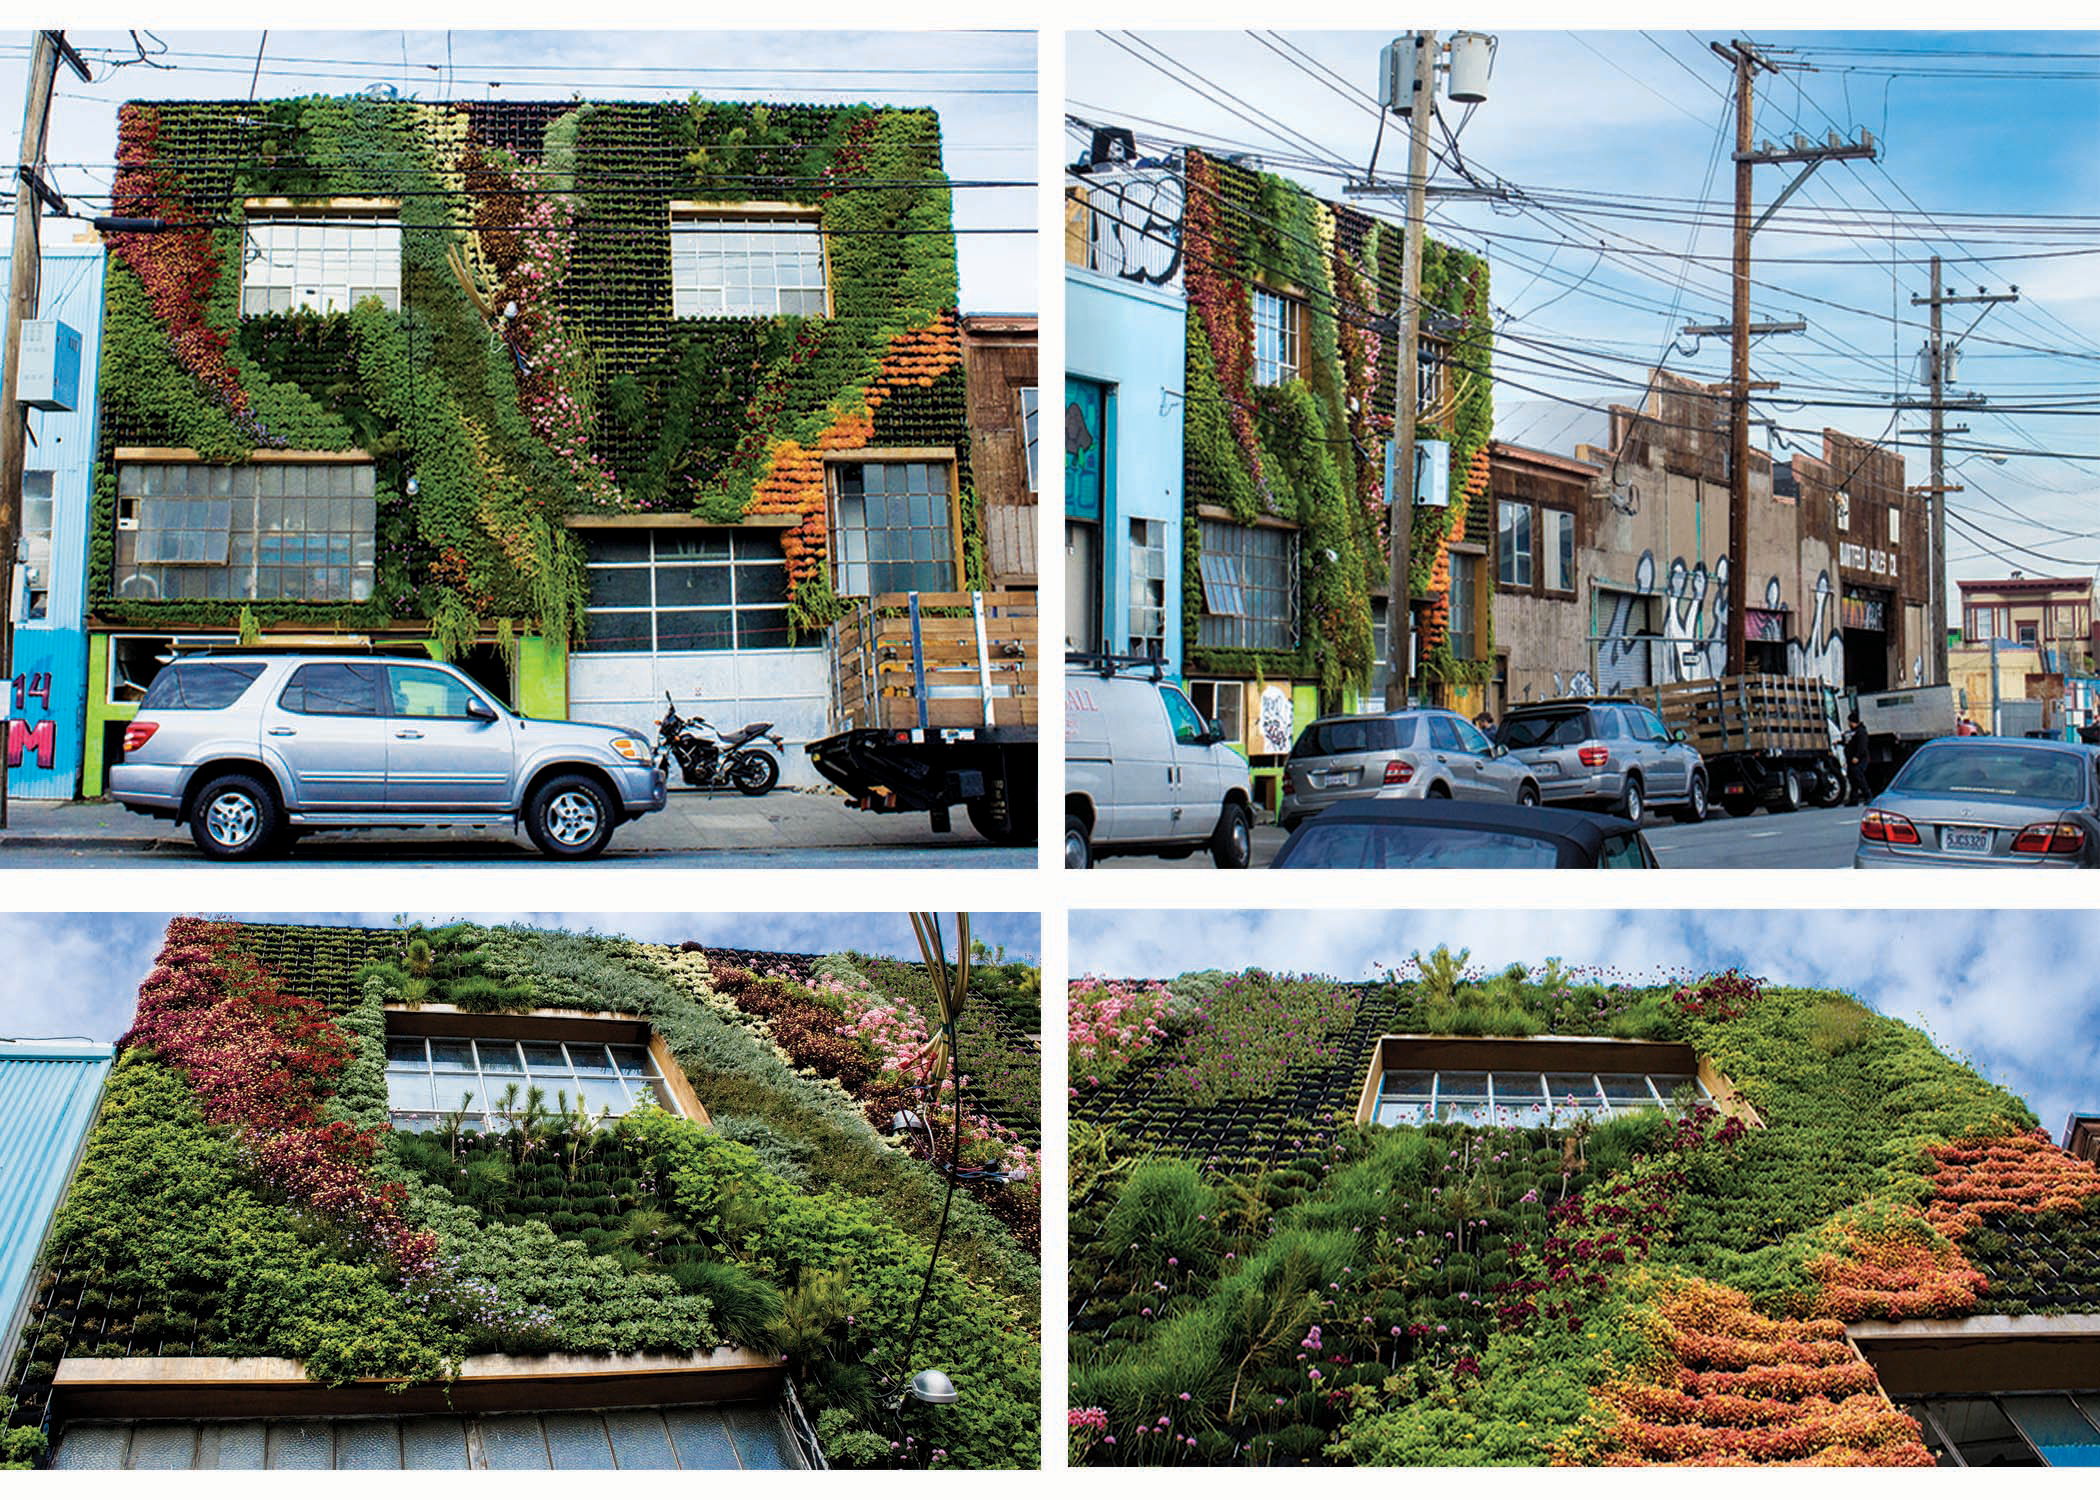 Partners in design: Amanda and Brandon Pruett from Living Green Design co-created this living wall in San Francisco's Mission District, turning a sterile heat island into a thriving green oasis.